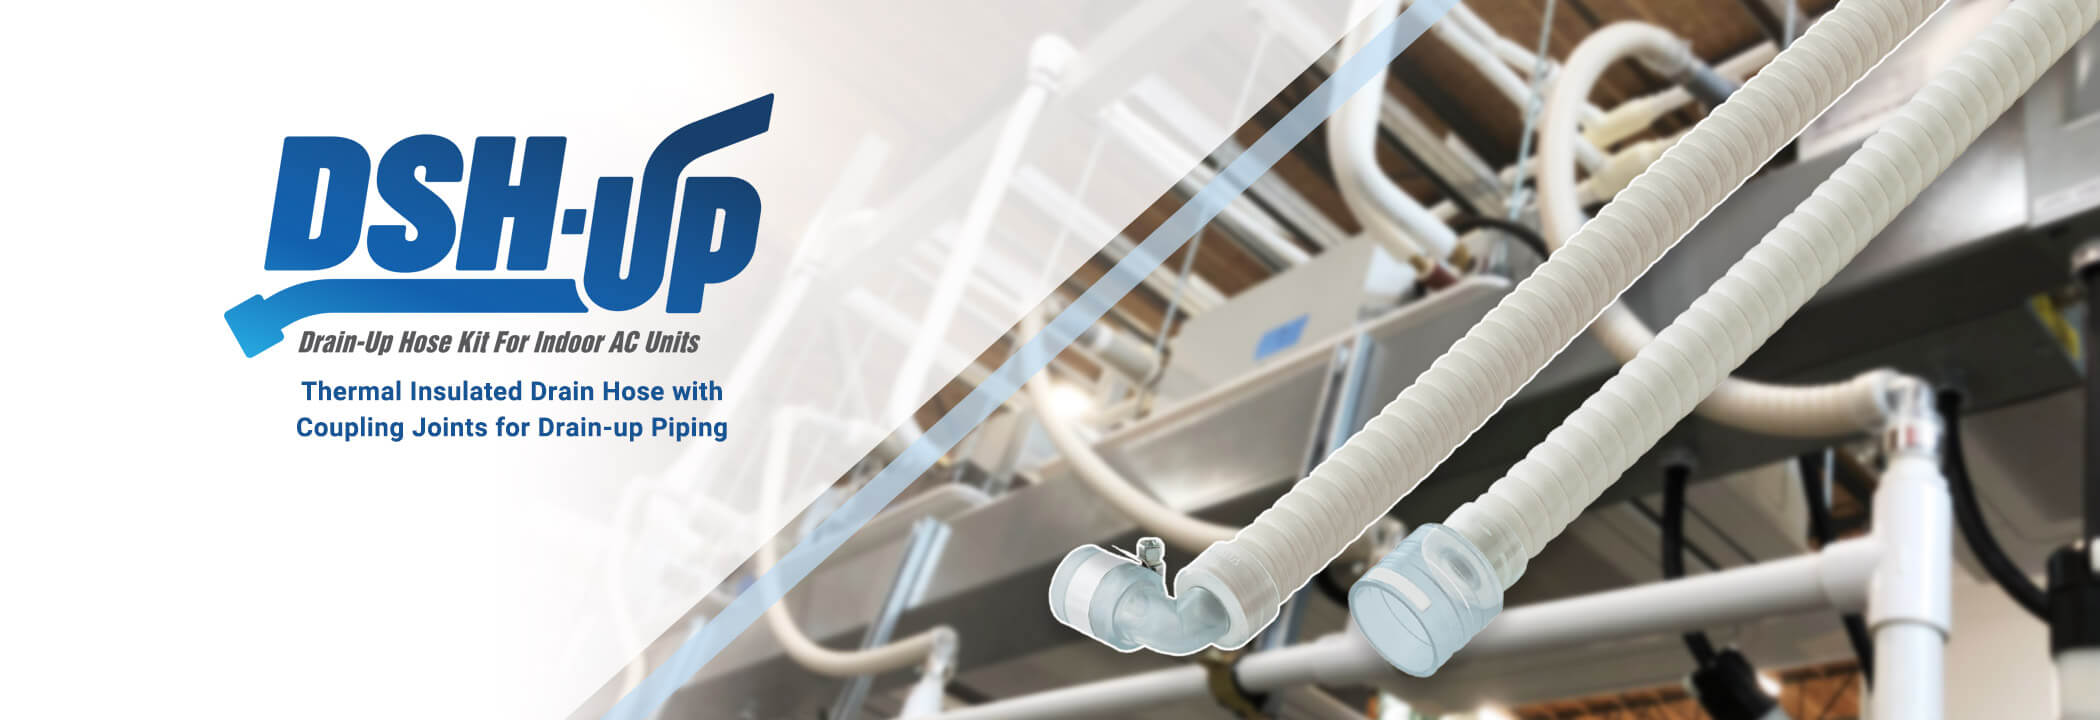 DSH-UP   Drain-up Hose Kit for Indoor AC Units   Thermal Insulated Drain Hose with Coupling Joints for Drain-up Piping